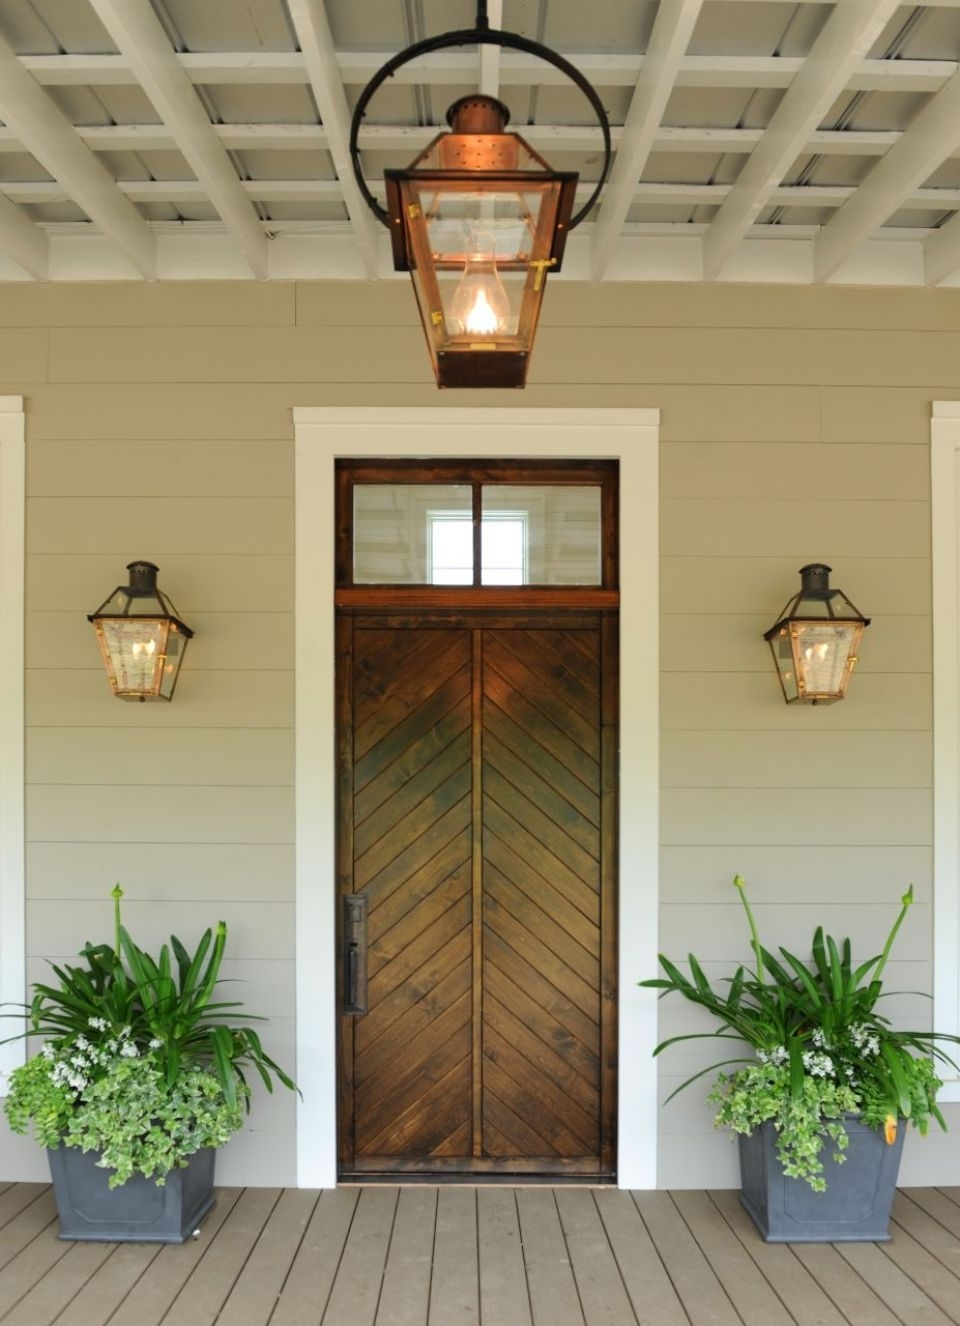 Gas Porch Light Parts Cheap Lights Lantern – Teamns Throughout 2018 Outdoor Hanging Gas Lights (Gallery 11 of 20)